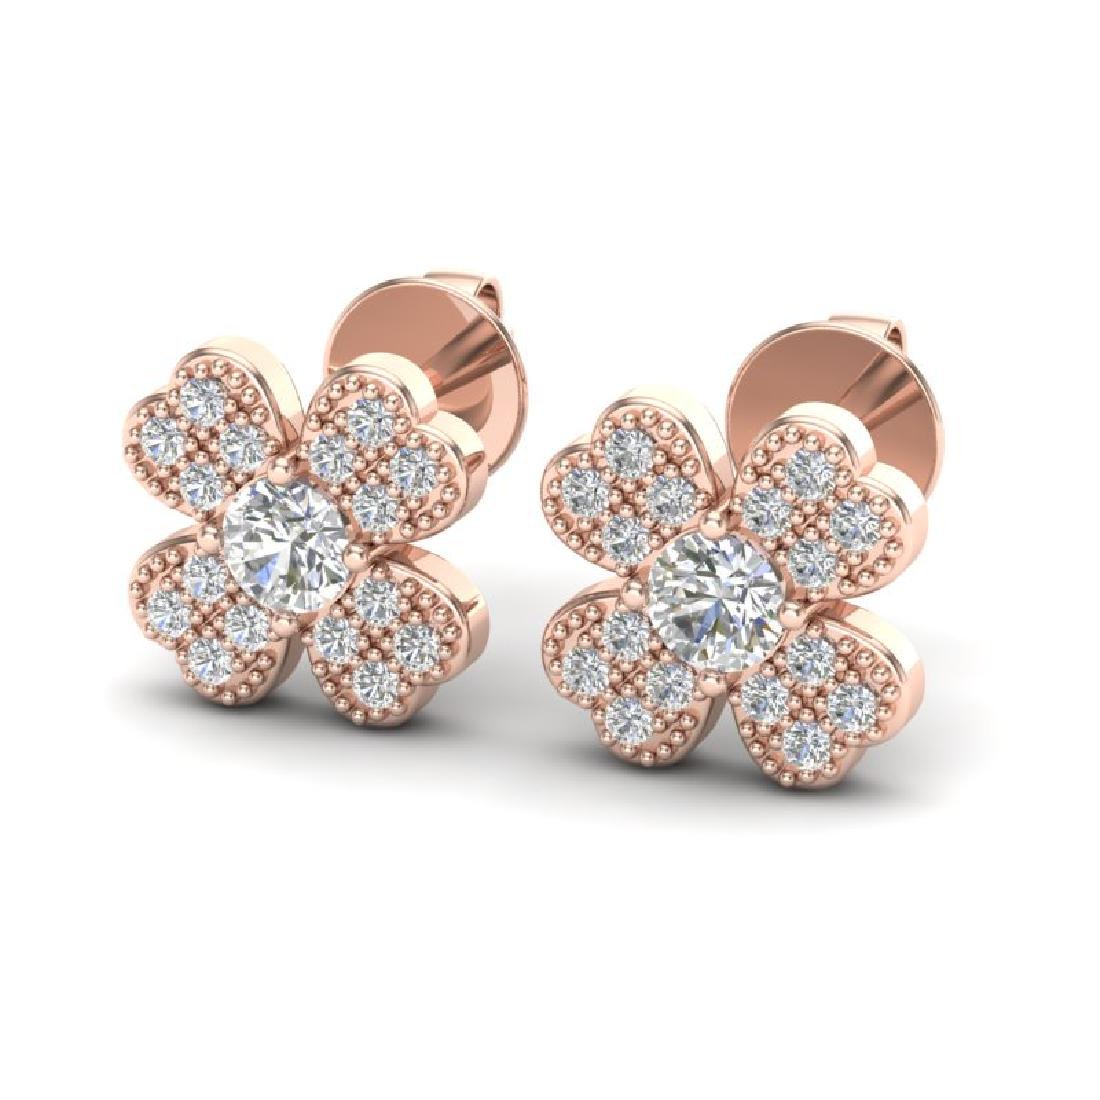 0.54 CTW Micro Pave VS/SI Diamond Earrings 14K Rose